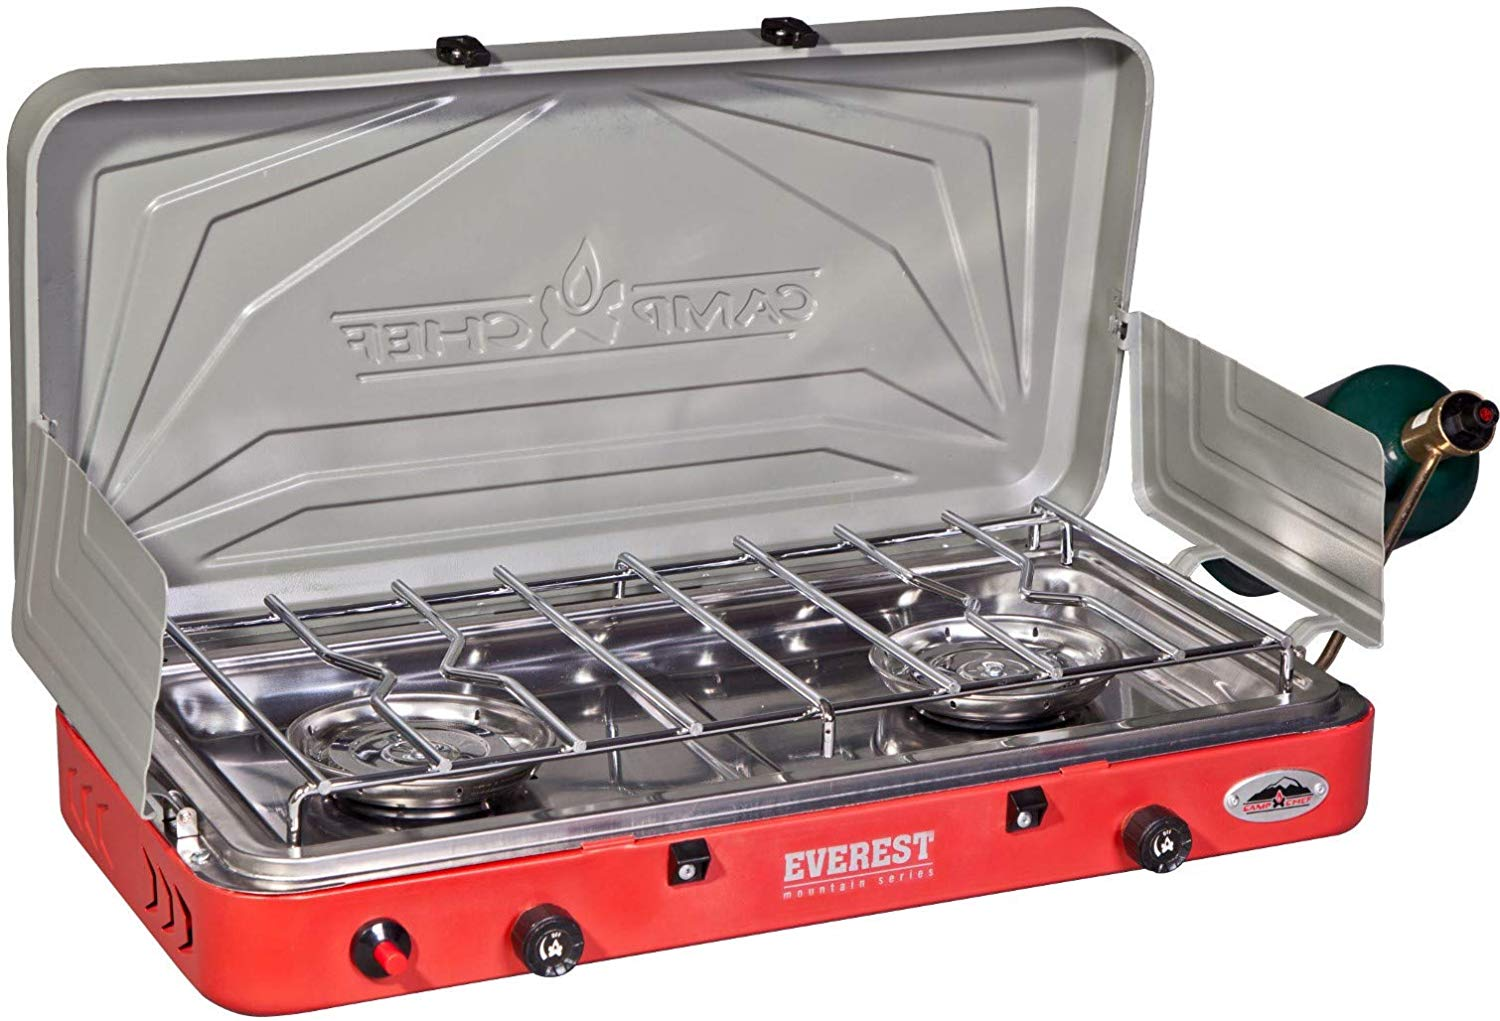 Camp Chef Everest 2 Burner Camping Stove